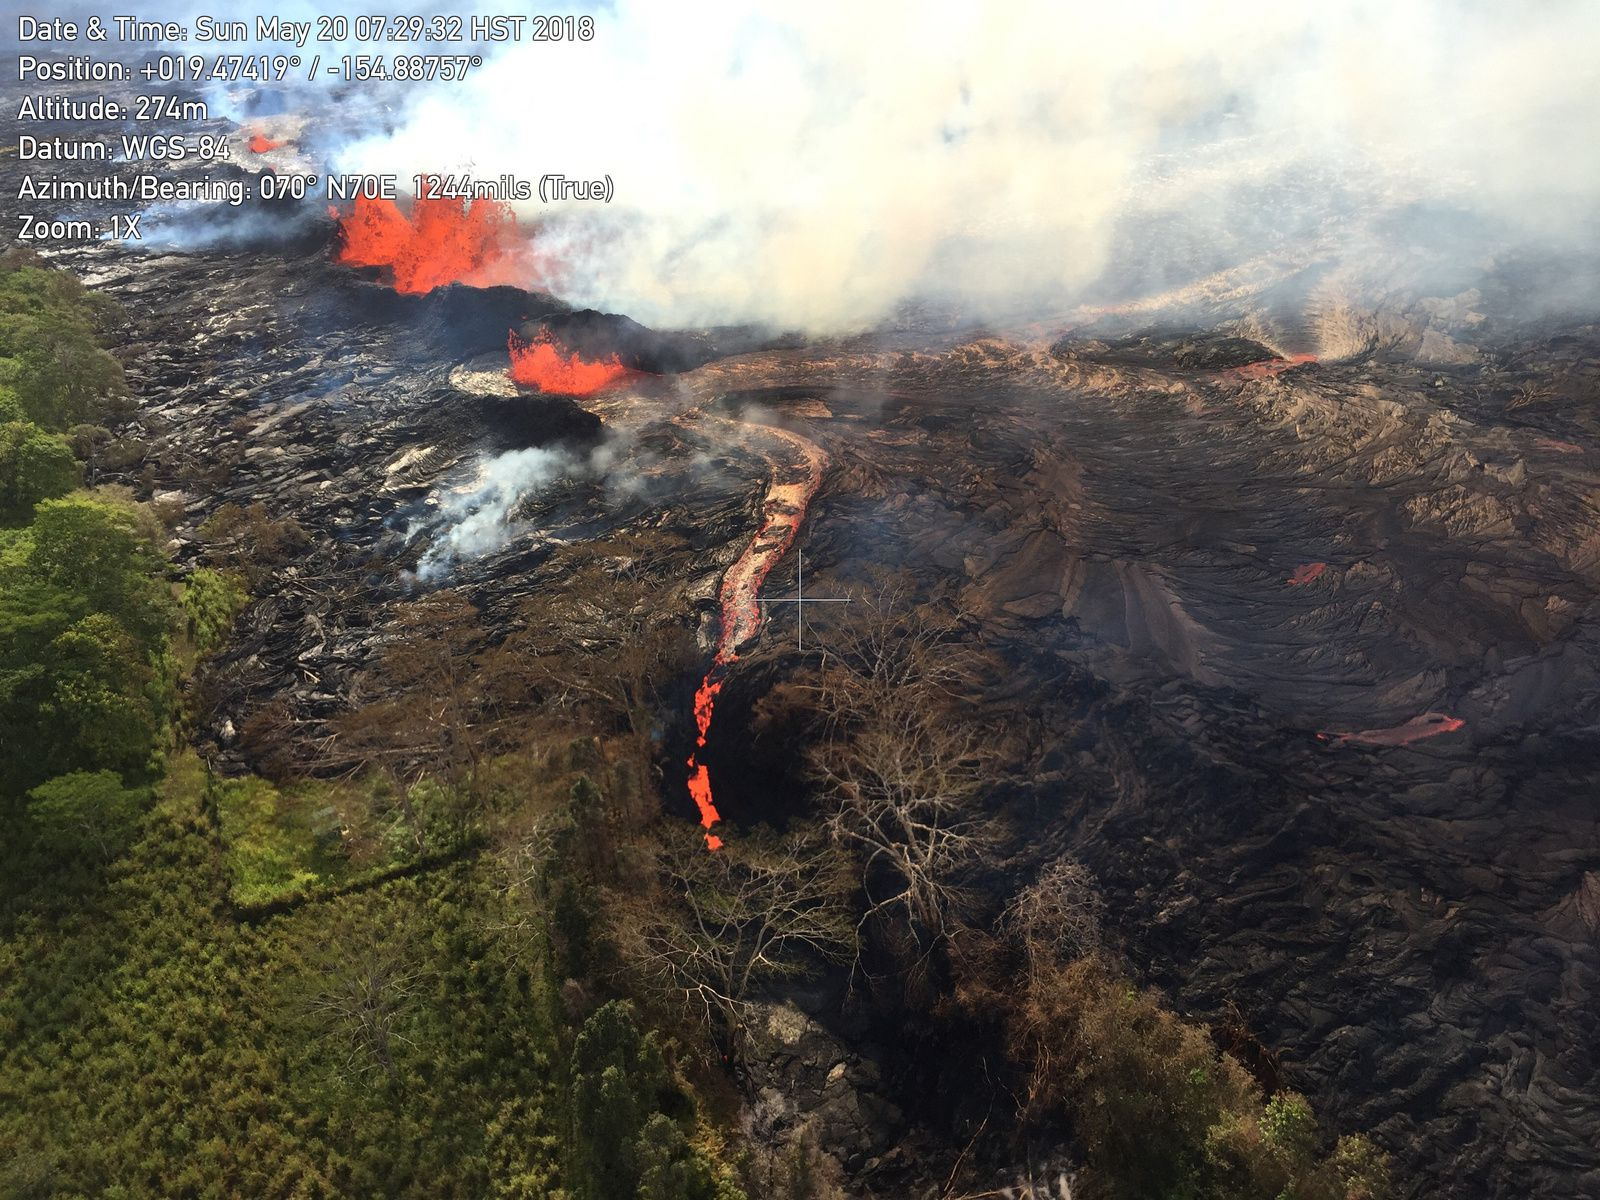 Kilauea East rift zone - 20.05.2018 / 7:29 am - East channellava flowingin open fracture on May 20th - Photo HVO-USGS